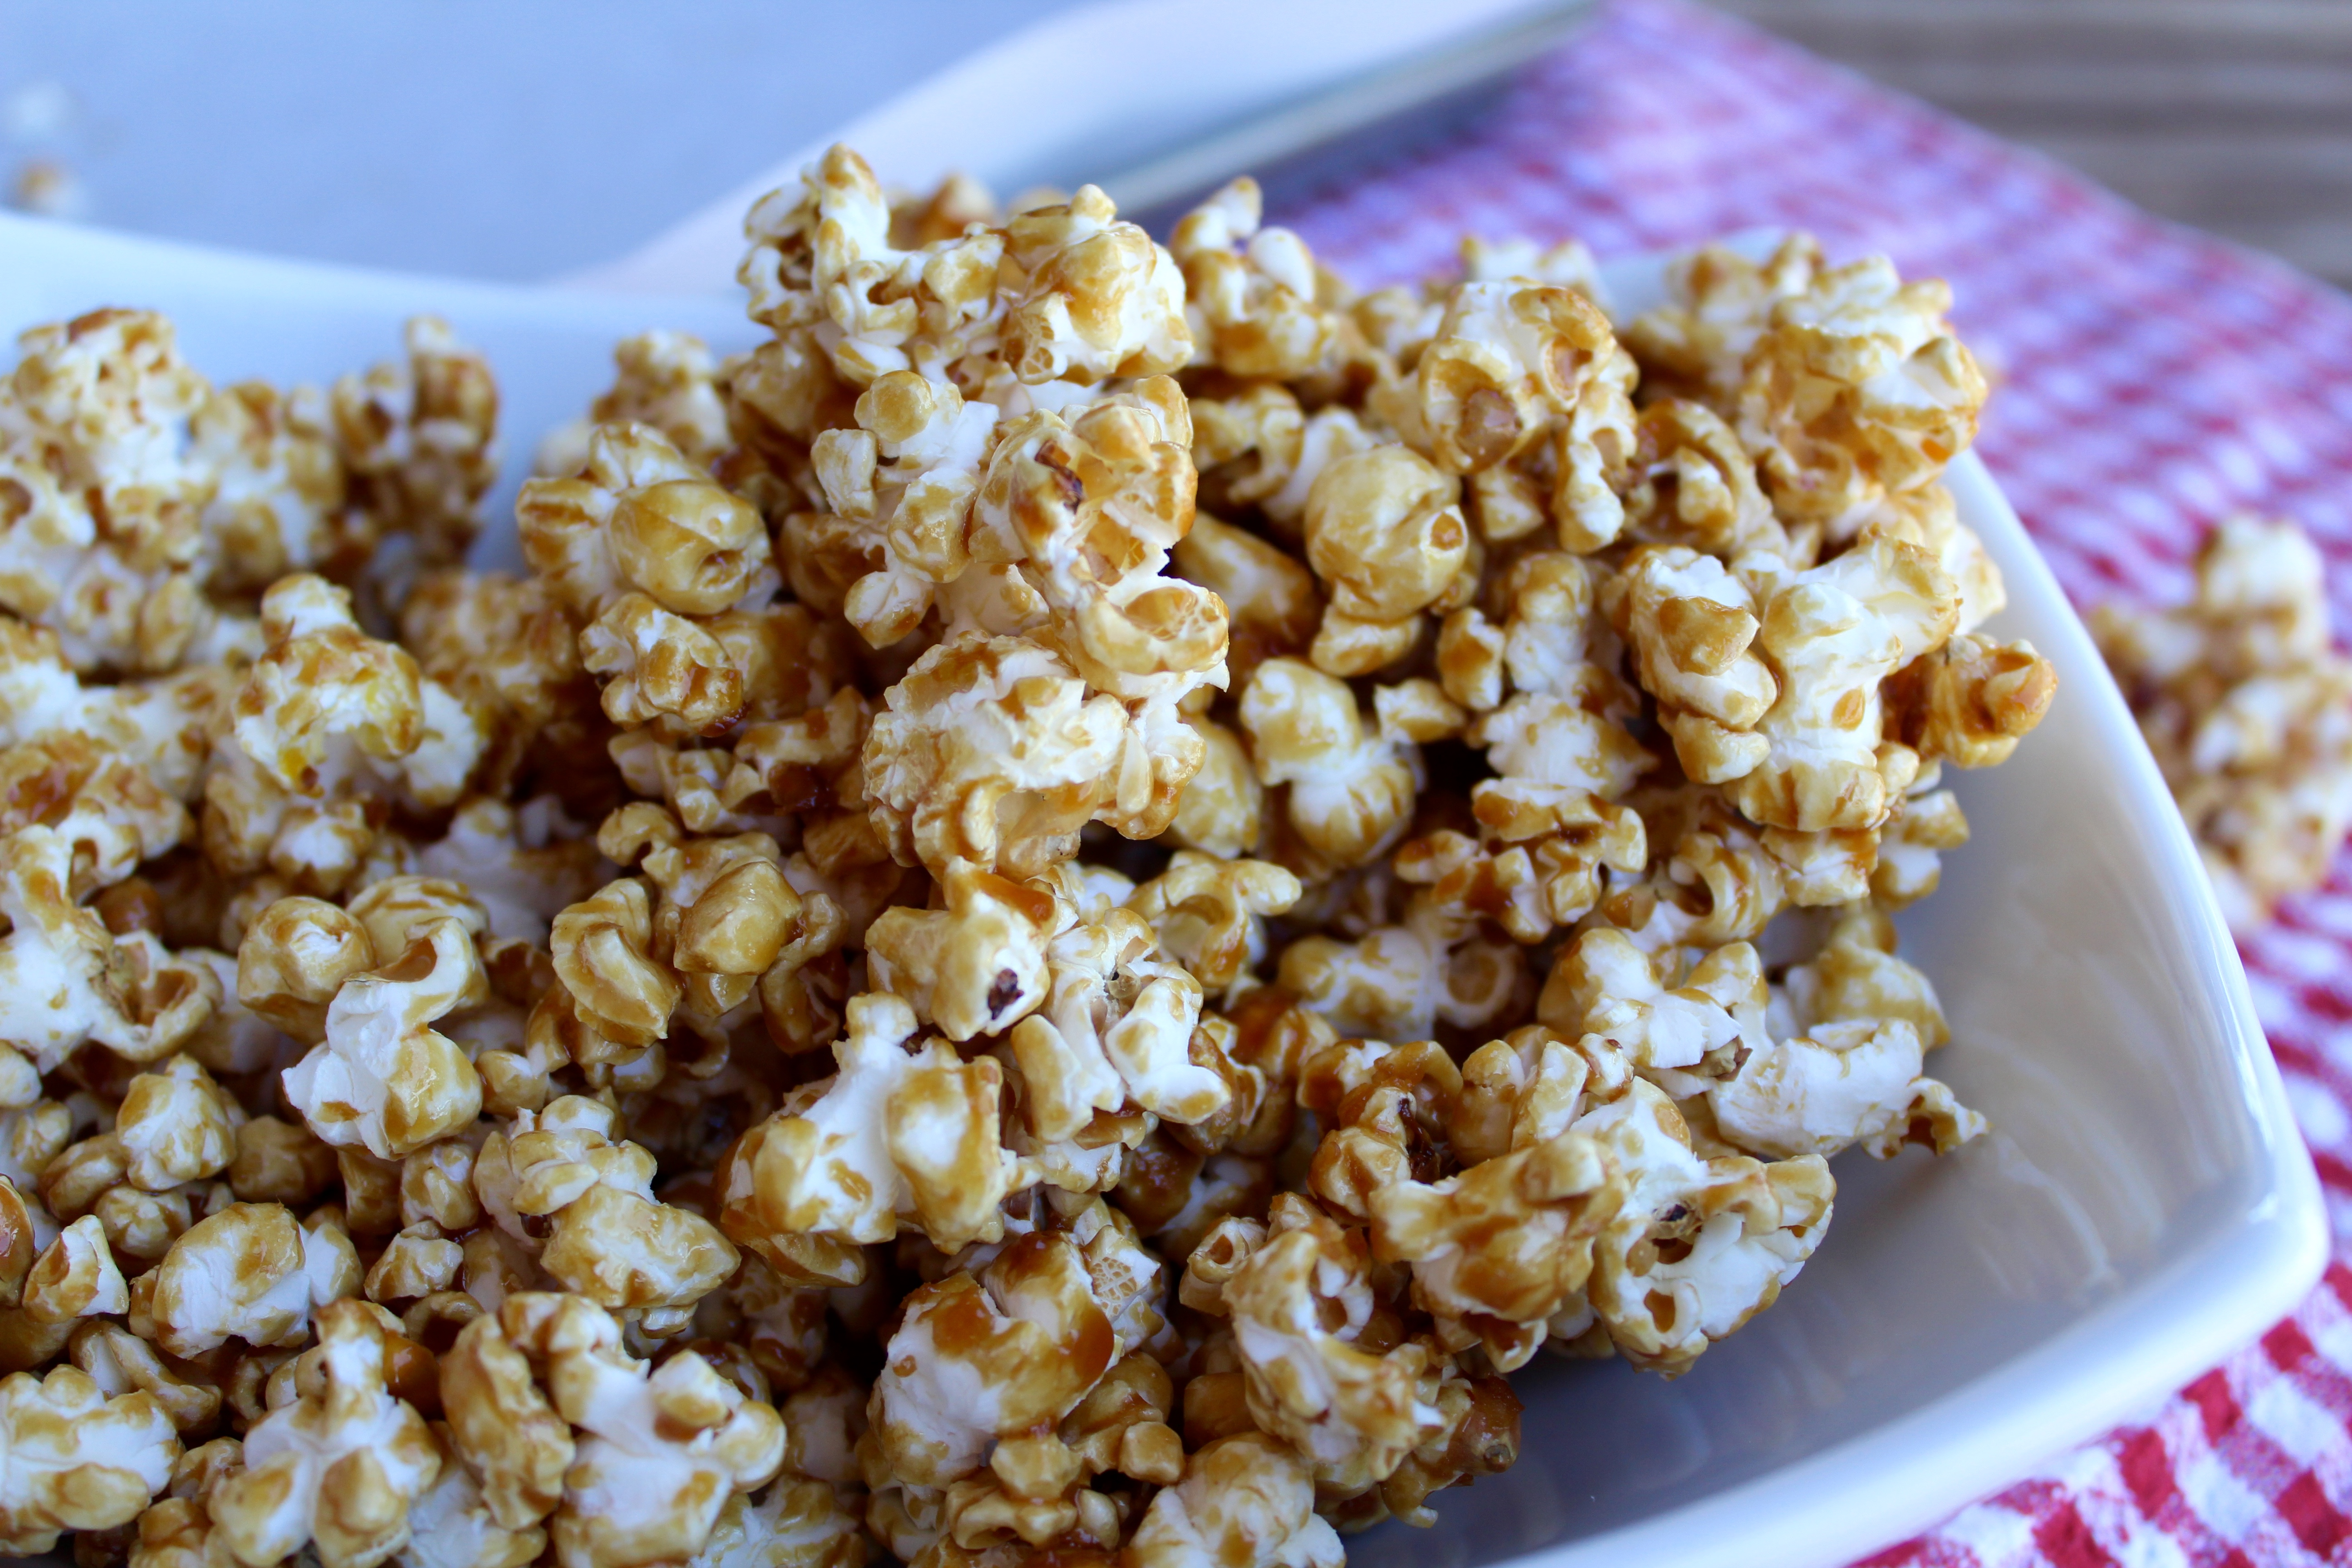 Vegan Caramel Corn that's Naturally Sweetened